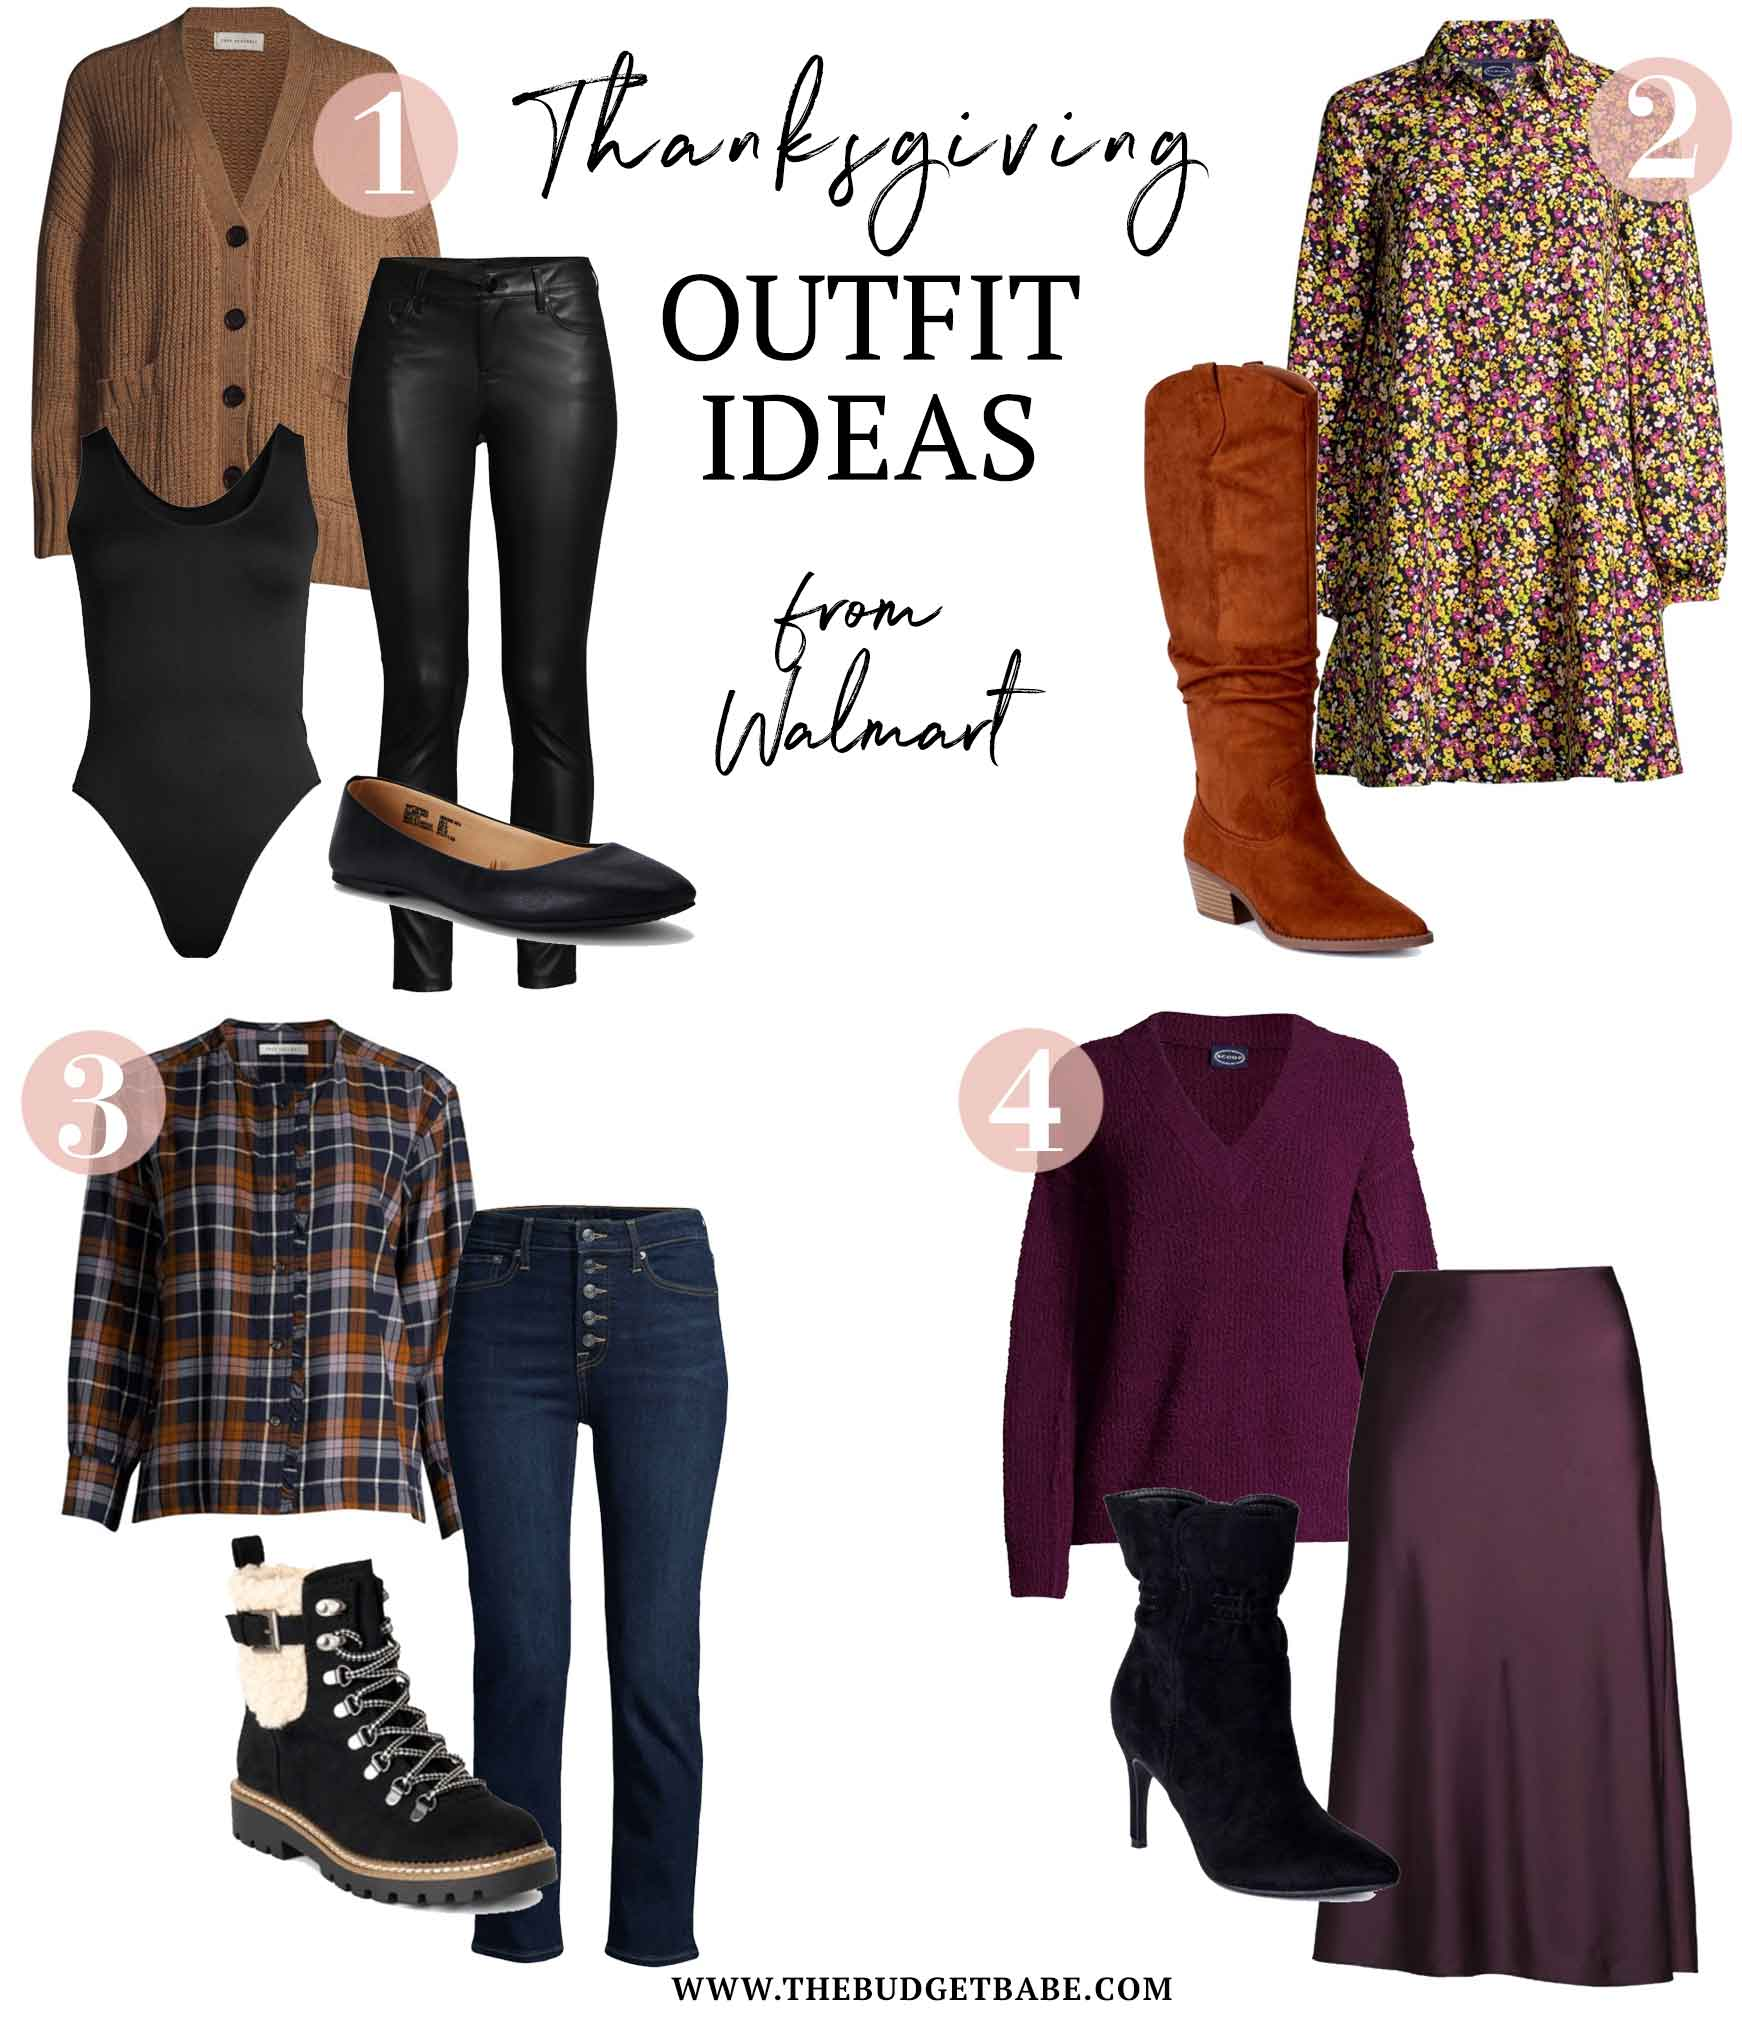 Thanksgiving Outfit Ideas from Walmart